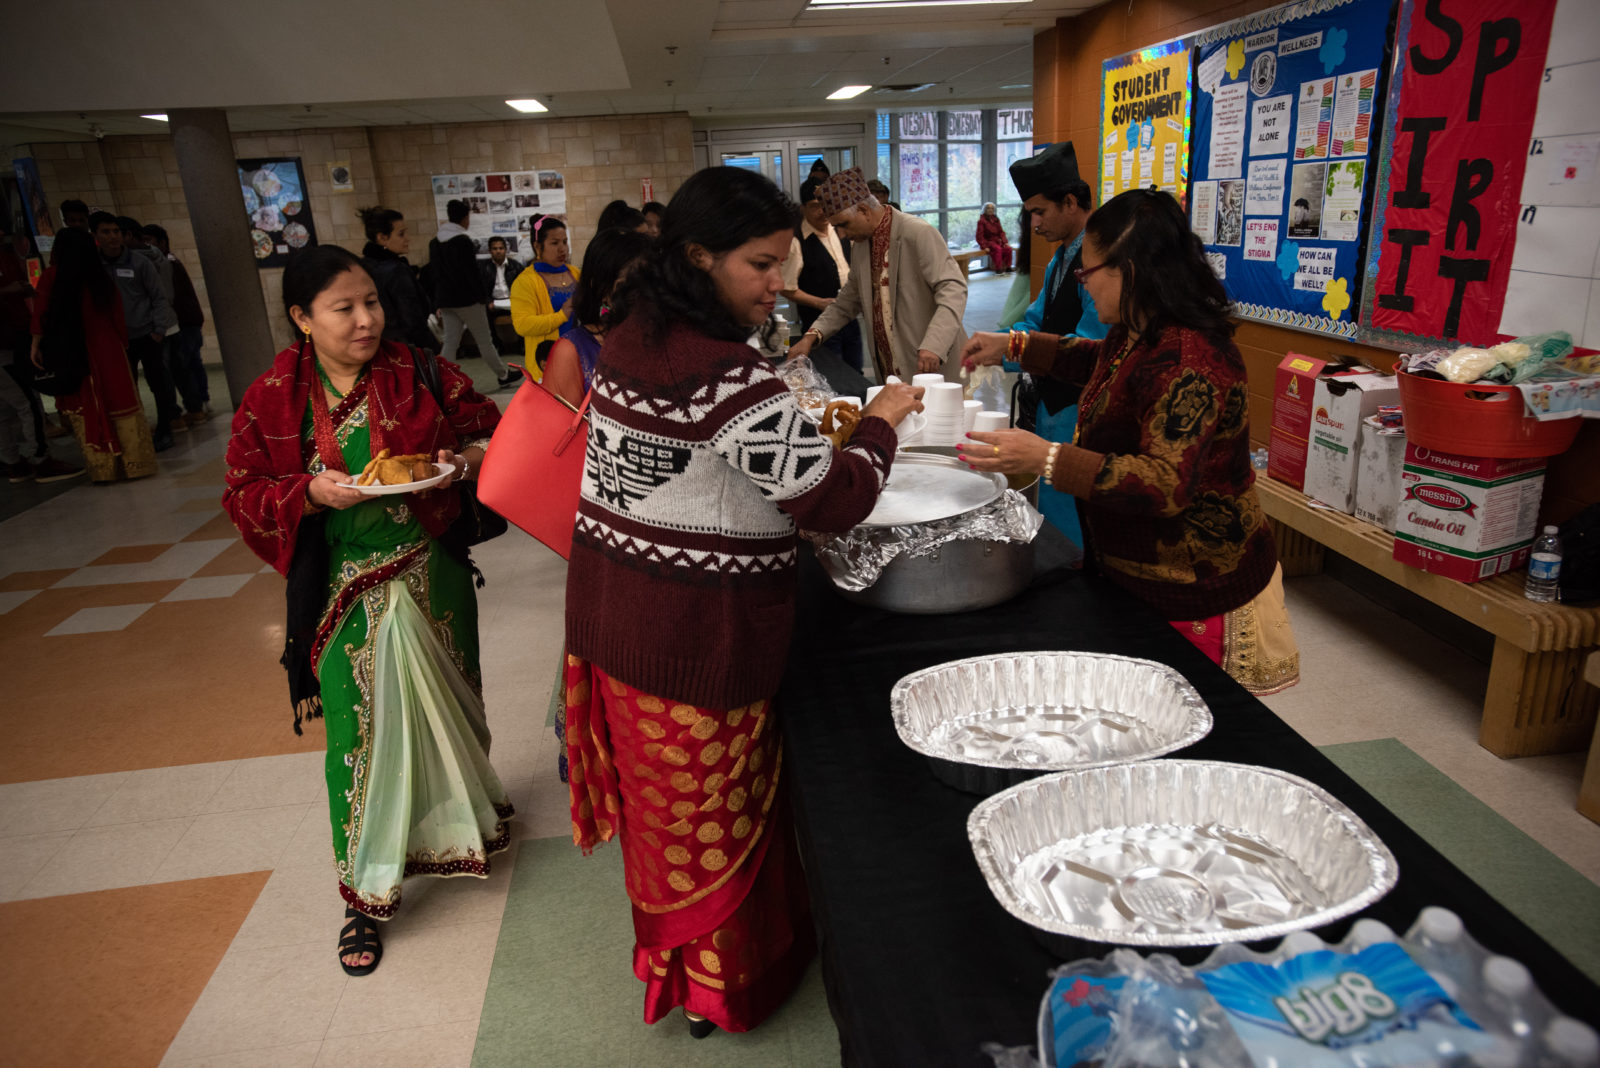 Women in colourful Bhutanese clothing gather around atable to serve food at a Diwali festival in Halifax.